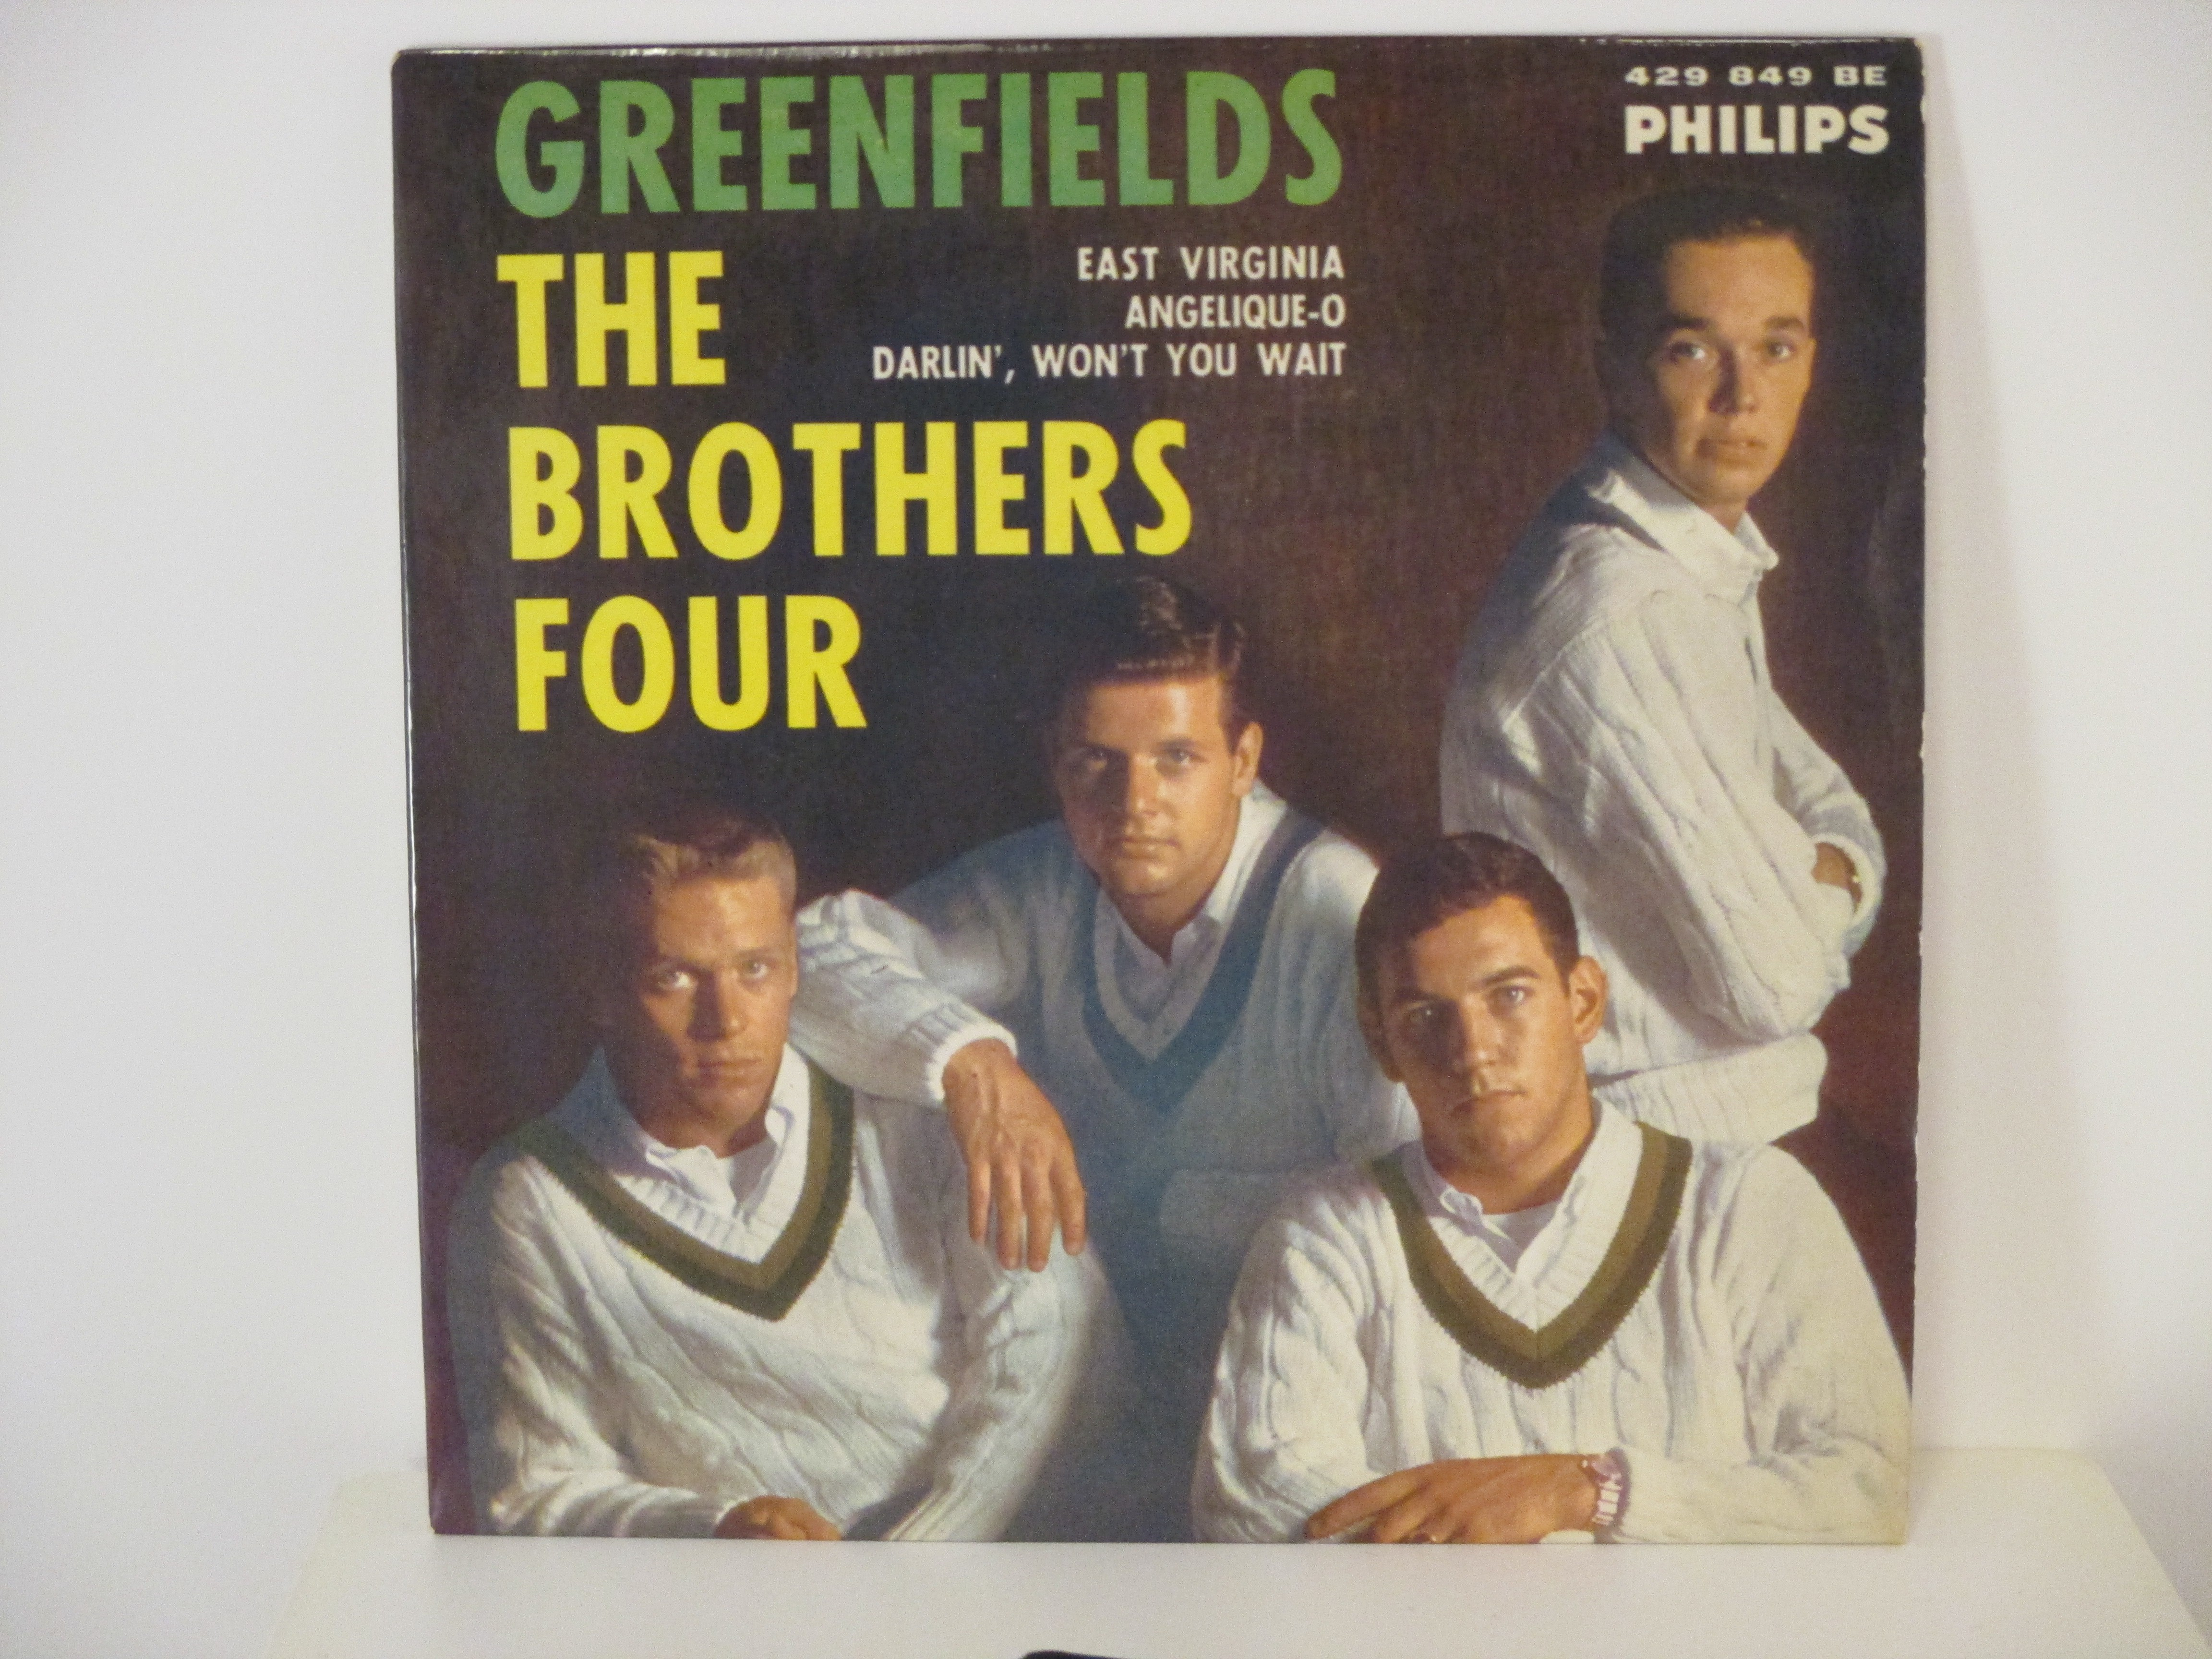 BROTHERS FOUR : (EP) Greenfields / East Virginia / Angelique-O / Darlin' / Won't you wait